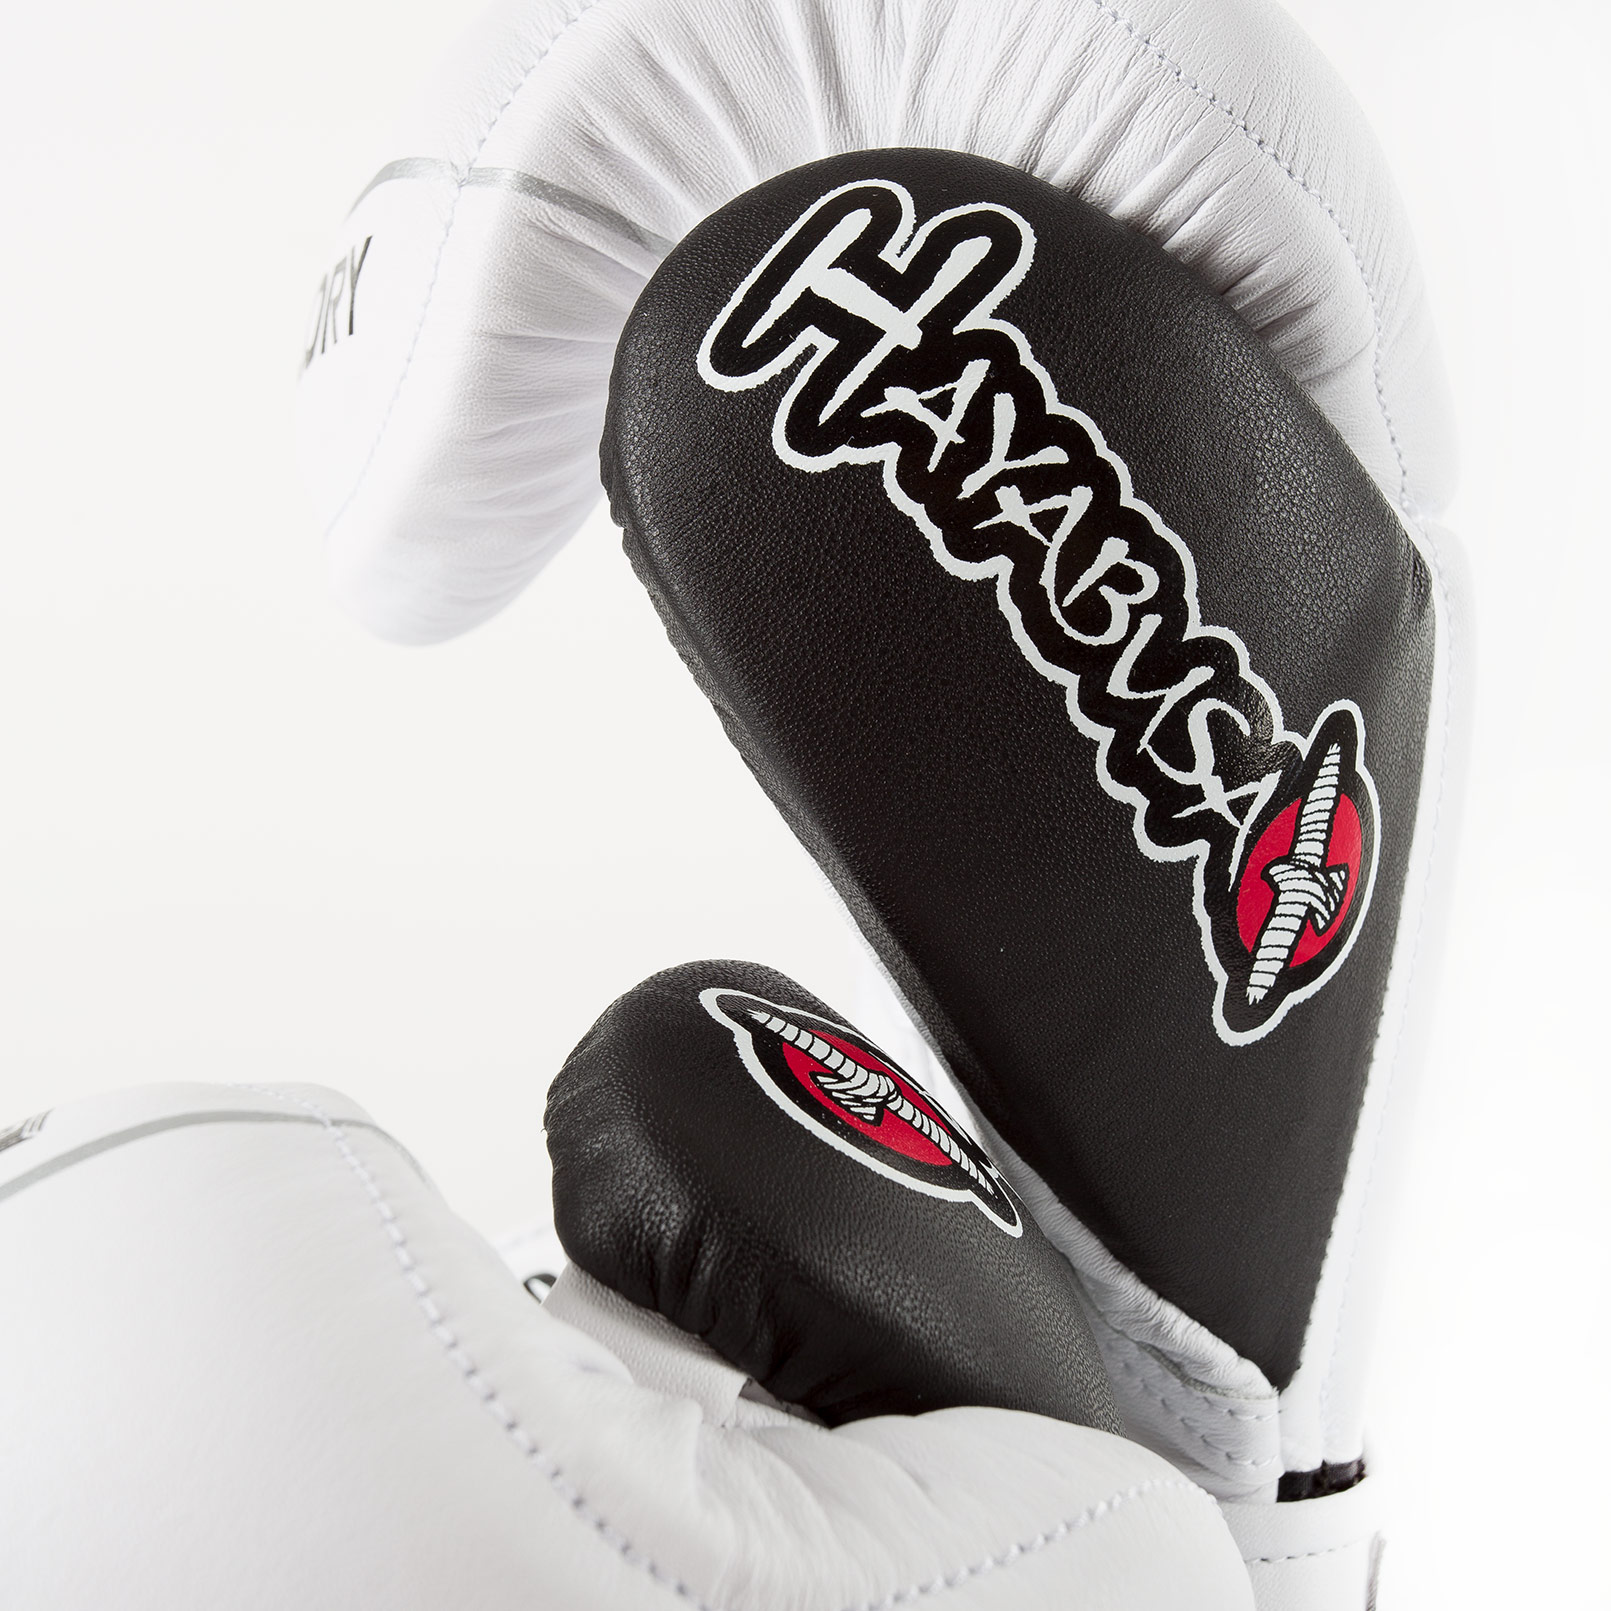 Glory Gloves - thumb